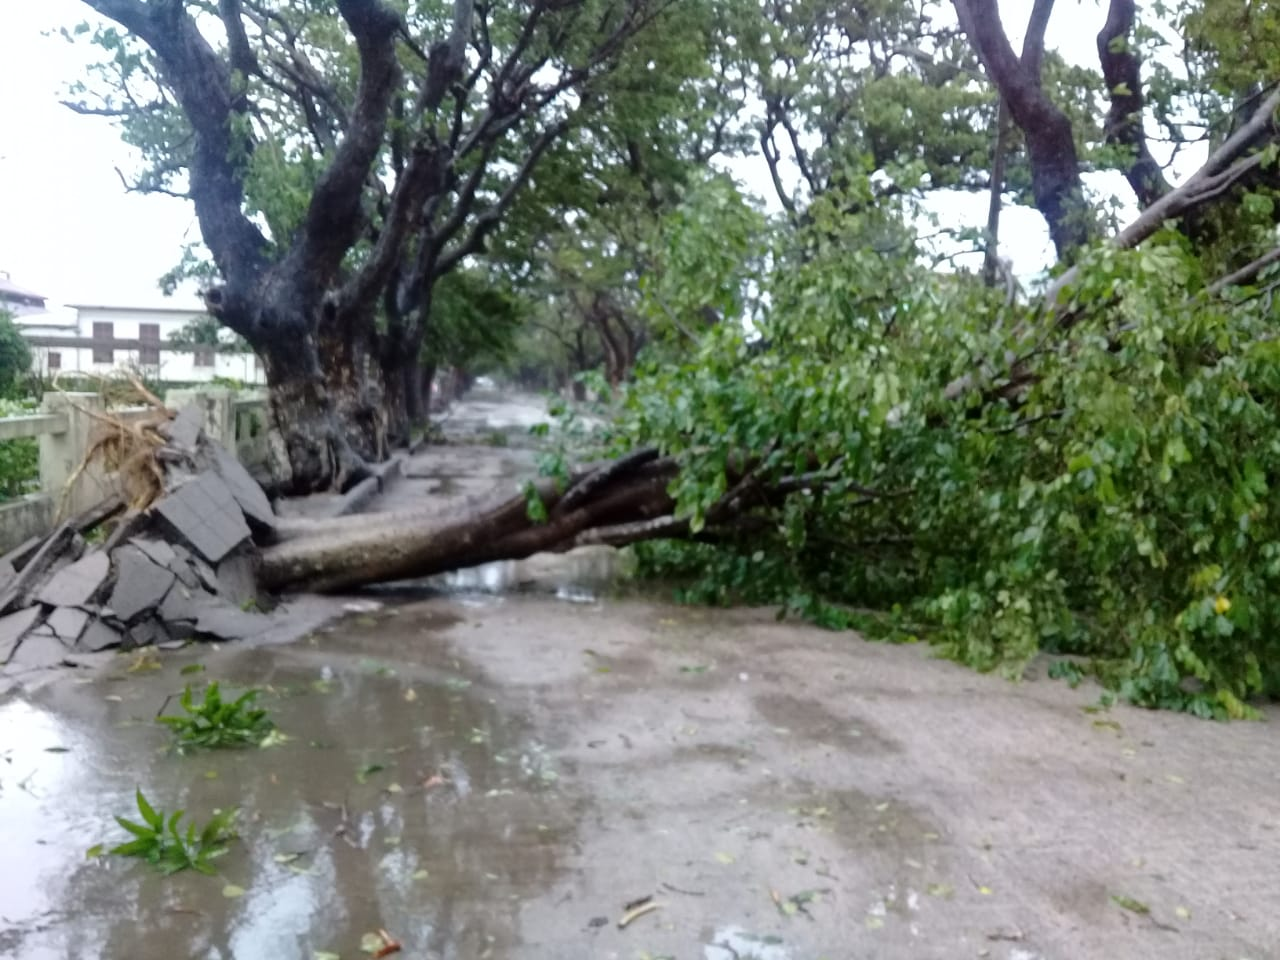 Tropical cyclone Idai battered Mozambique's coastal city of Beira leaving its 530,000 residents cut off Friday after power cables were downed.